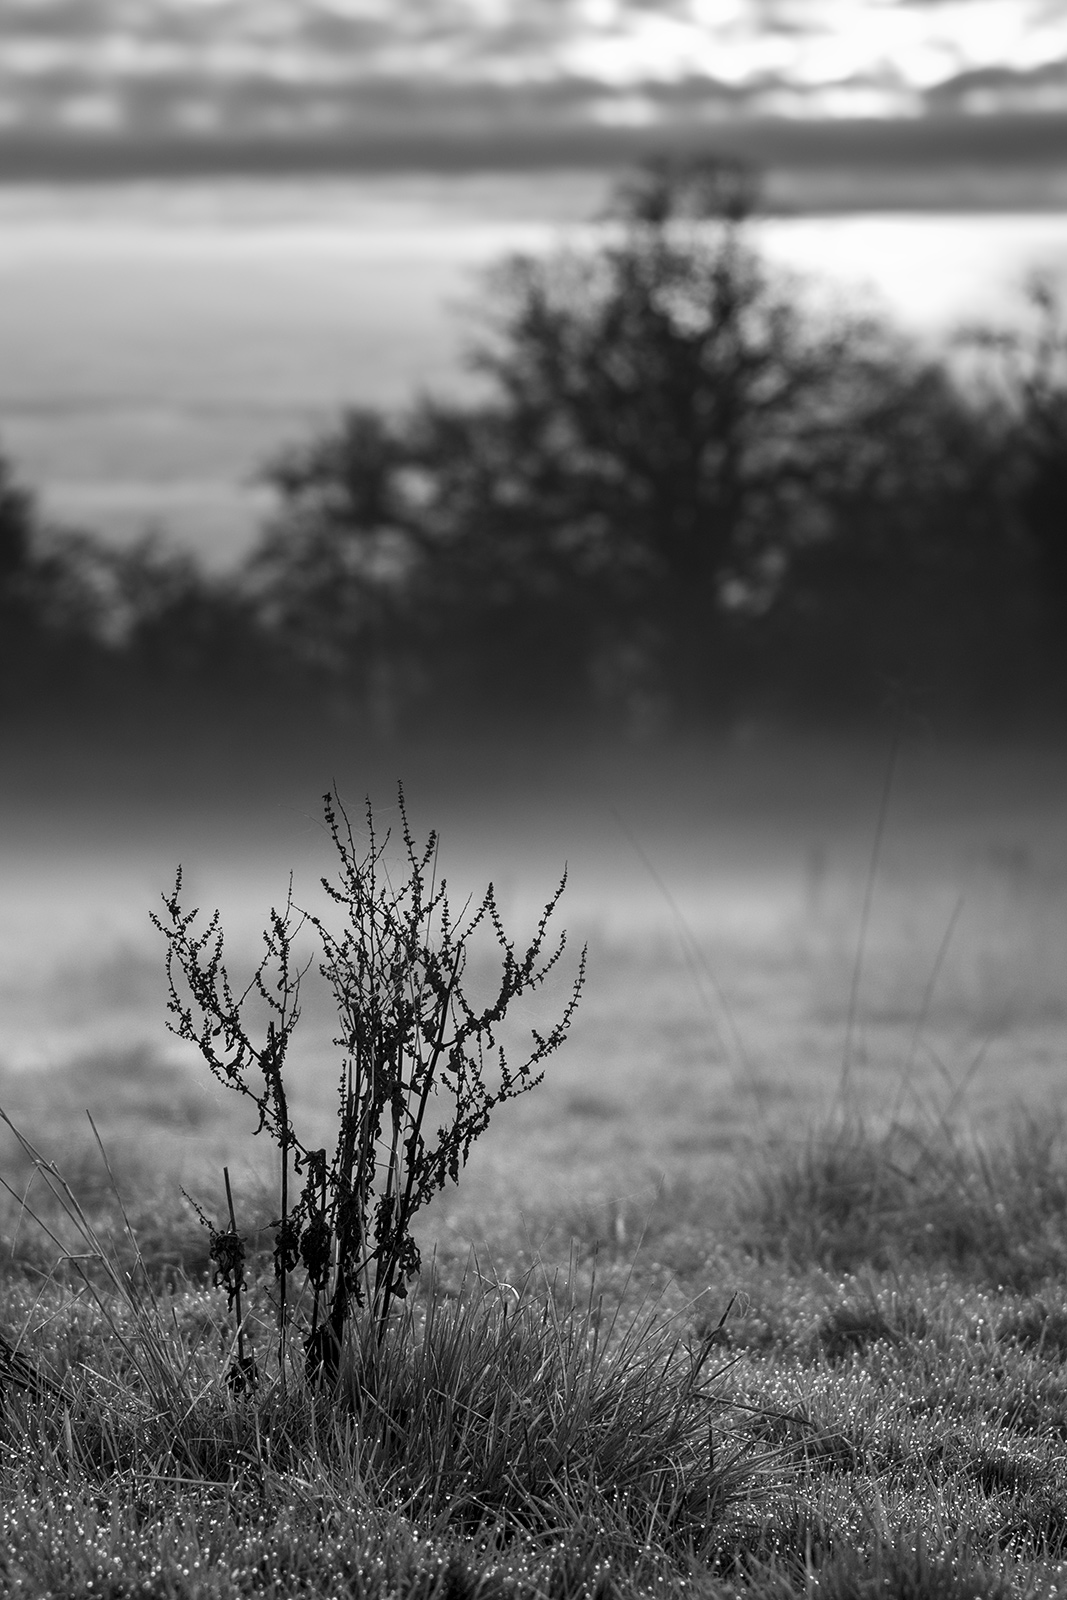 Dead dock plant standing in misty meadow with trees and evening sun in background Stratfield Mortimer Berkshire UK Meyer Optik Görlitz Orestegor 200mm f/4 lens, black and white portrait composition nature rural countryside documentary photograph ©P. Maton 2018 eyeteeth.net